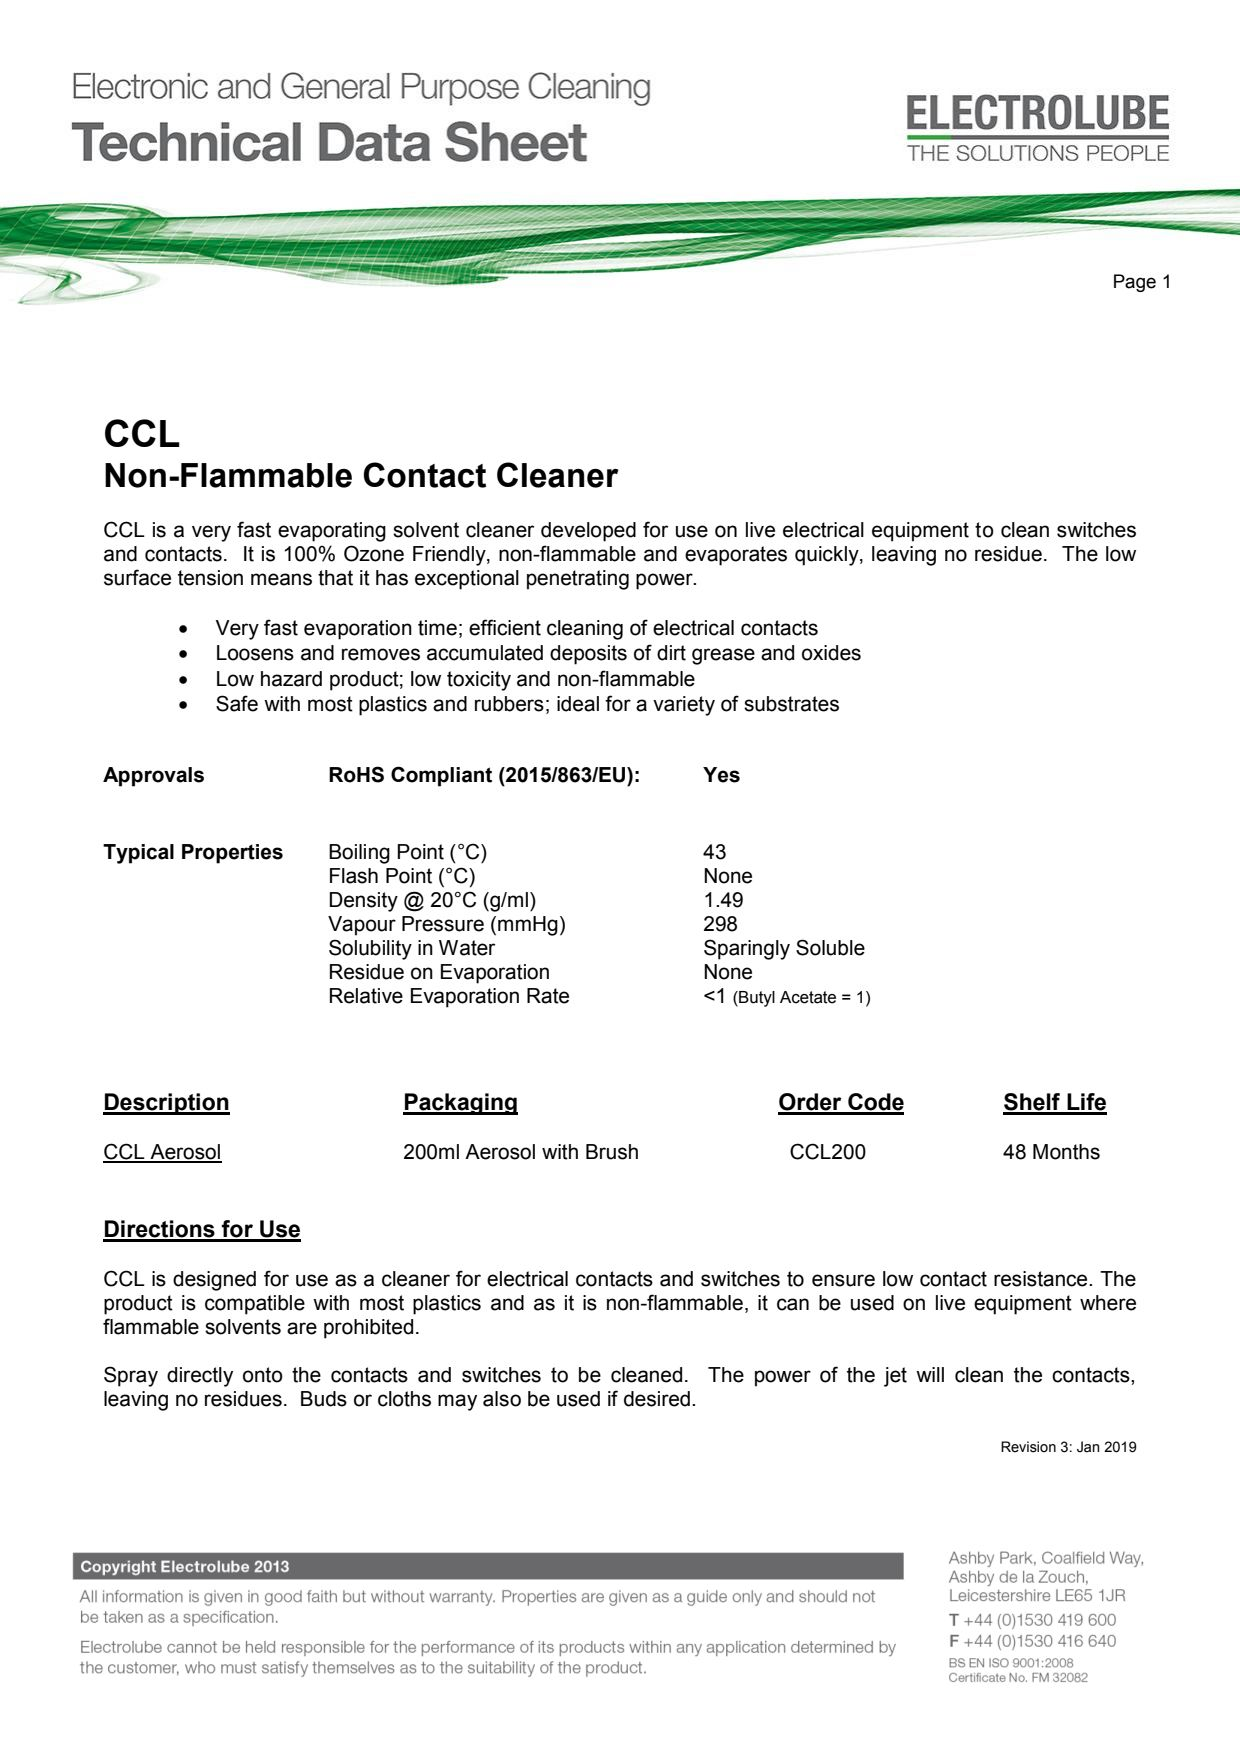 How To Clean Electrical Contacts featured image